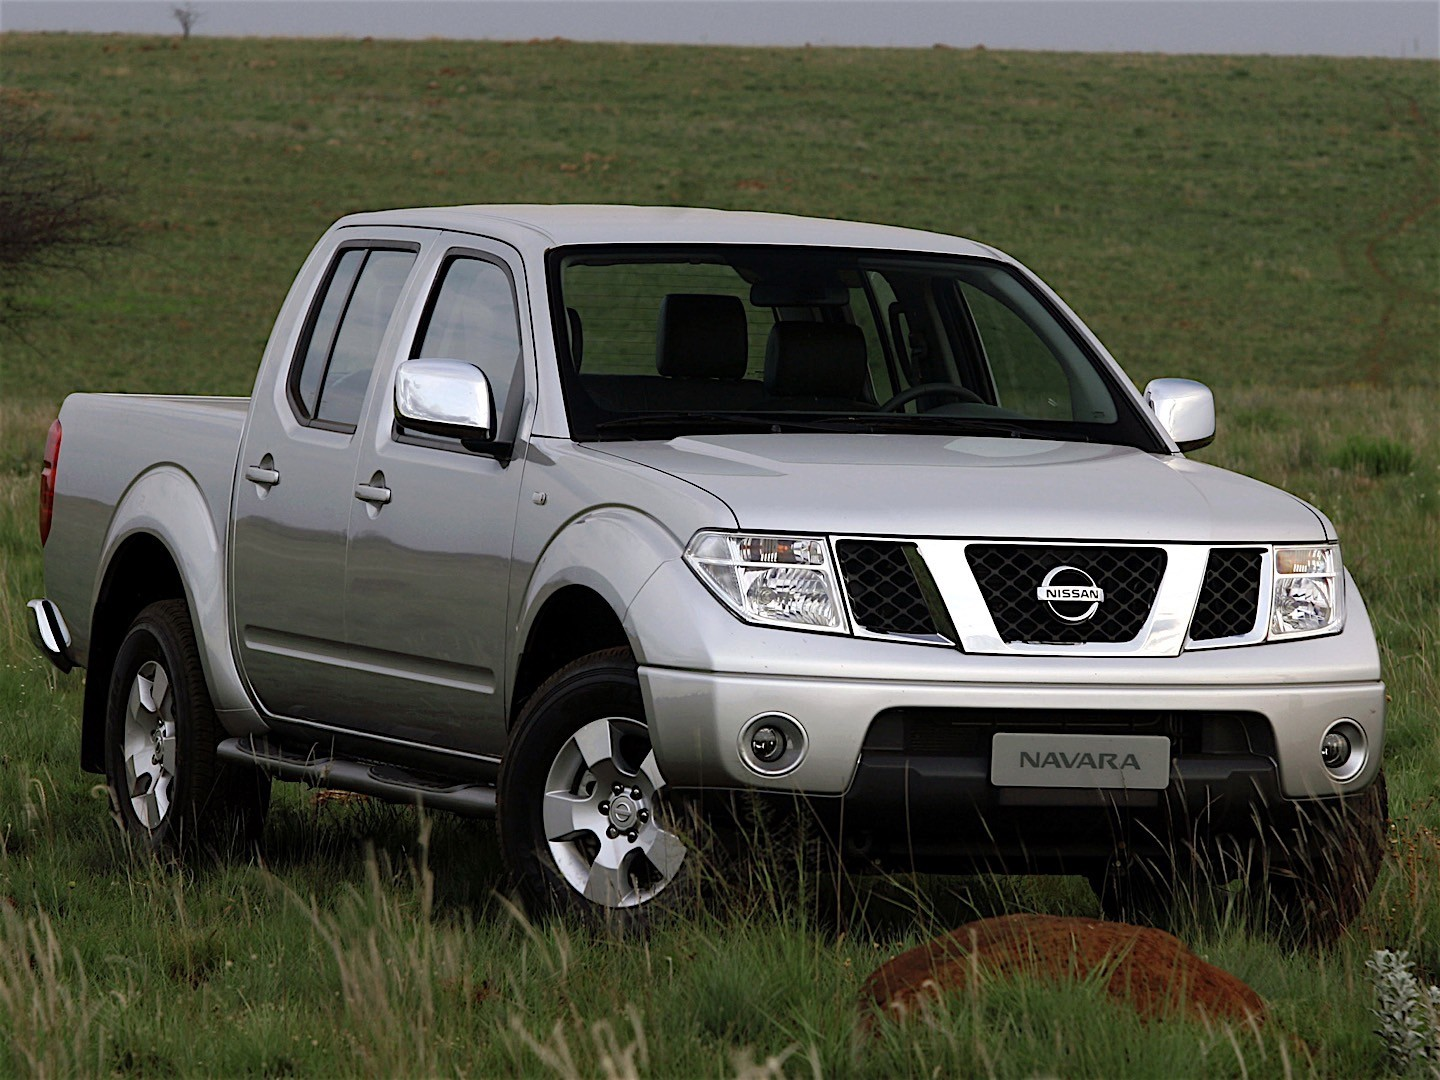 nissan navara frontier double cab 2005 2006 2007 2008. Black Bedroom Furniture Sets. Home Design Ideas